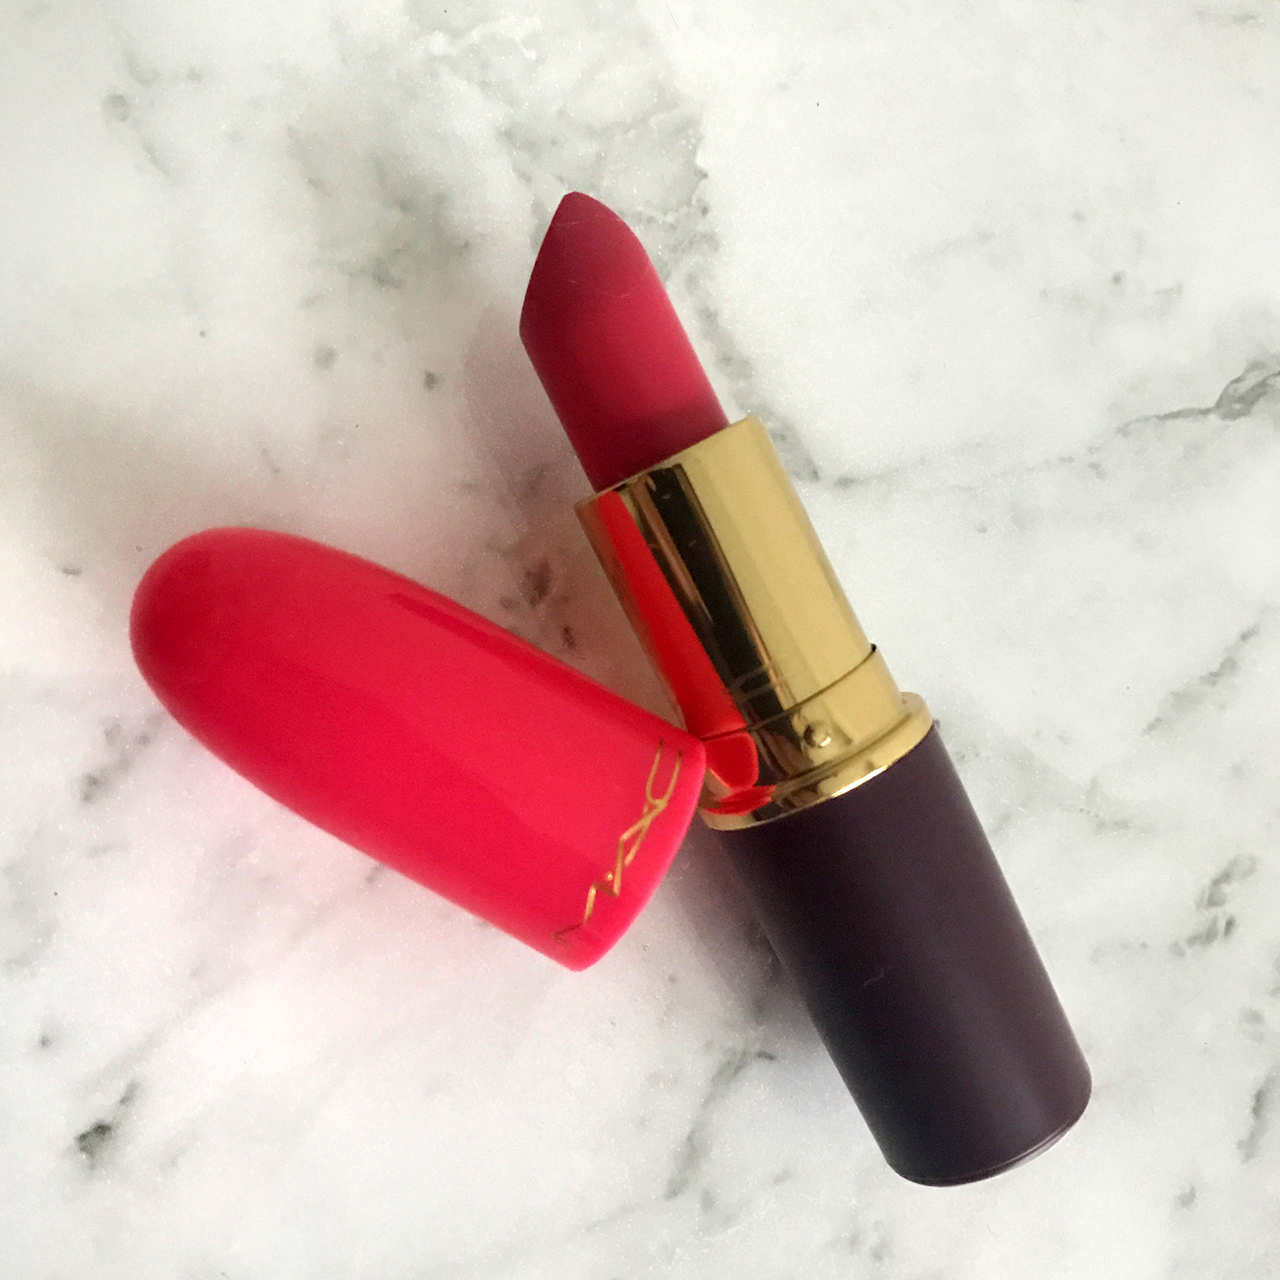 MAC Nutcracker Sweet Saucy Little Darling lipstick